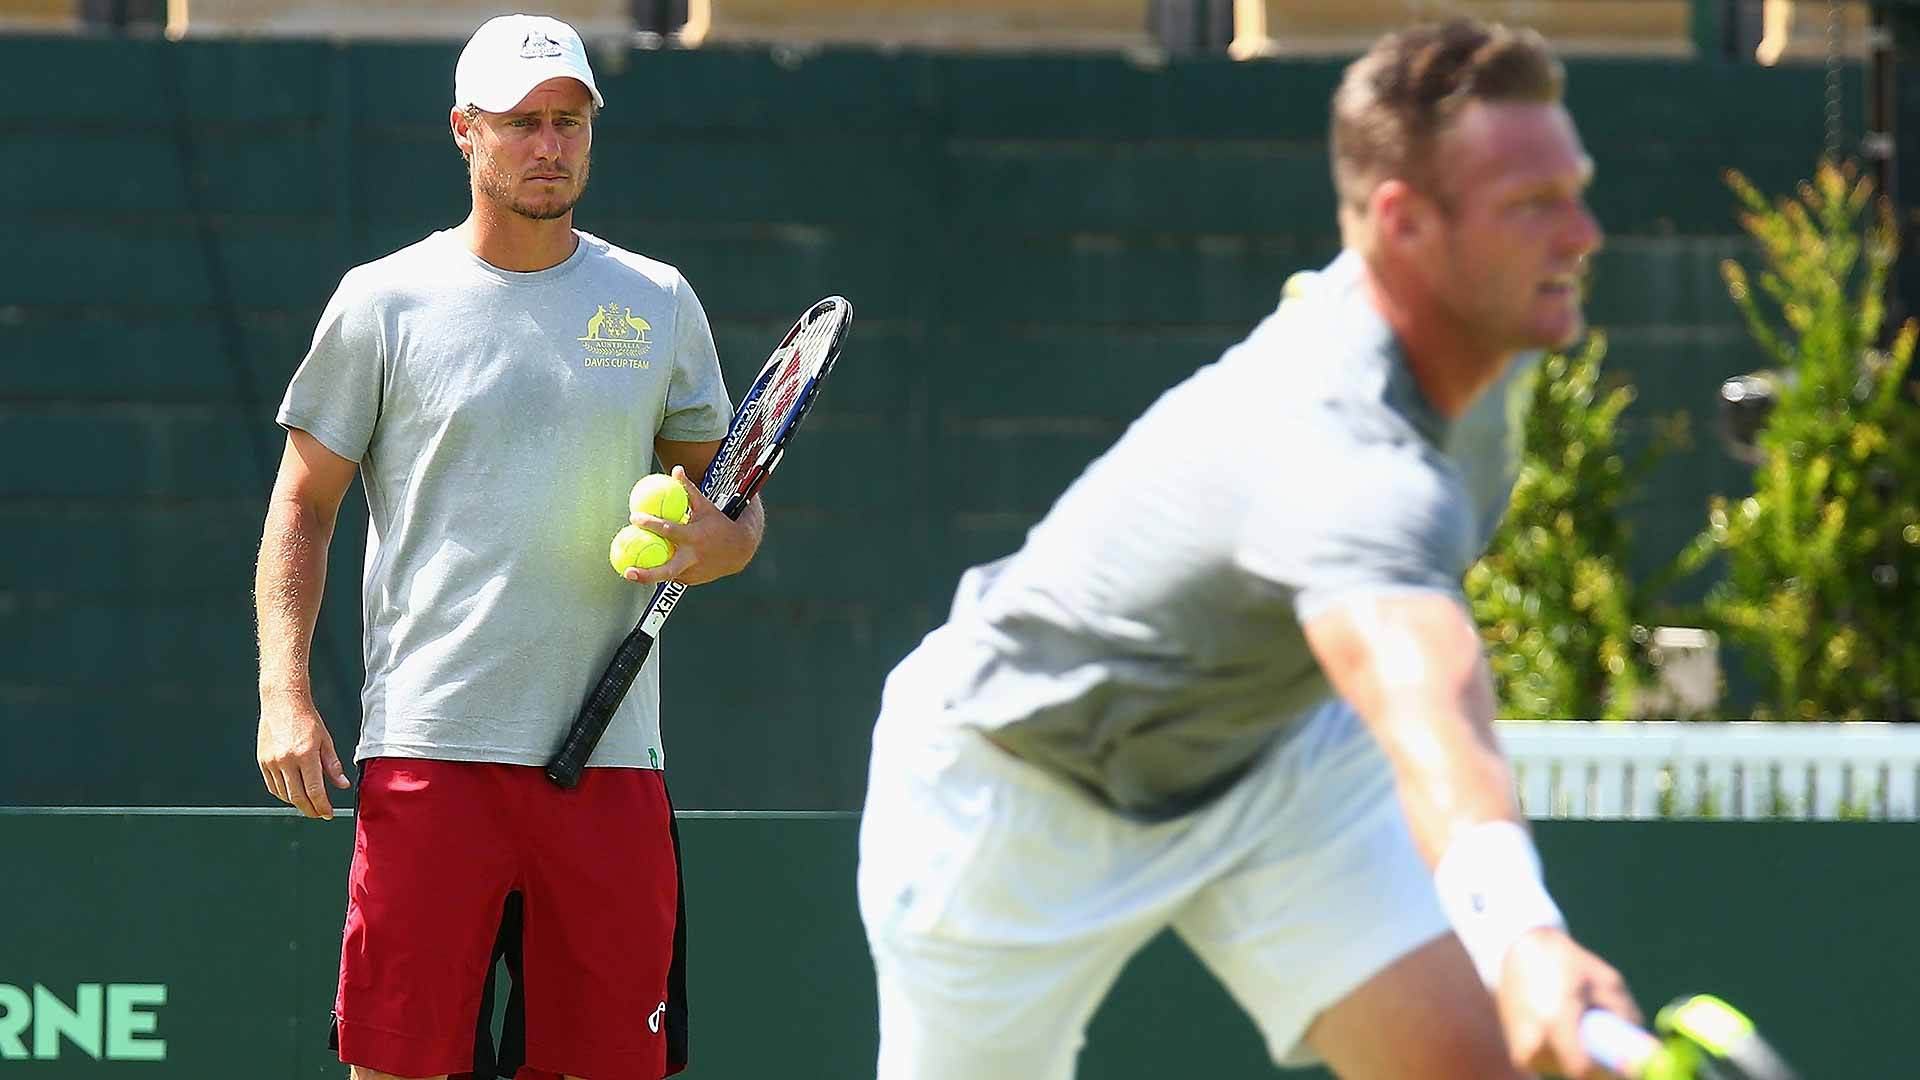 Lleyton Hewitt will make his debut as Australian Davis Cup captain in Kooyong.